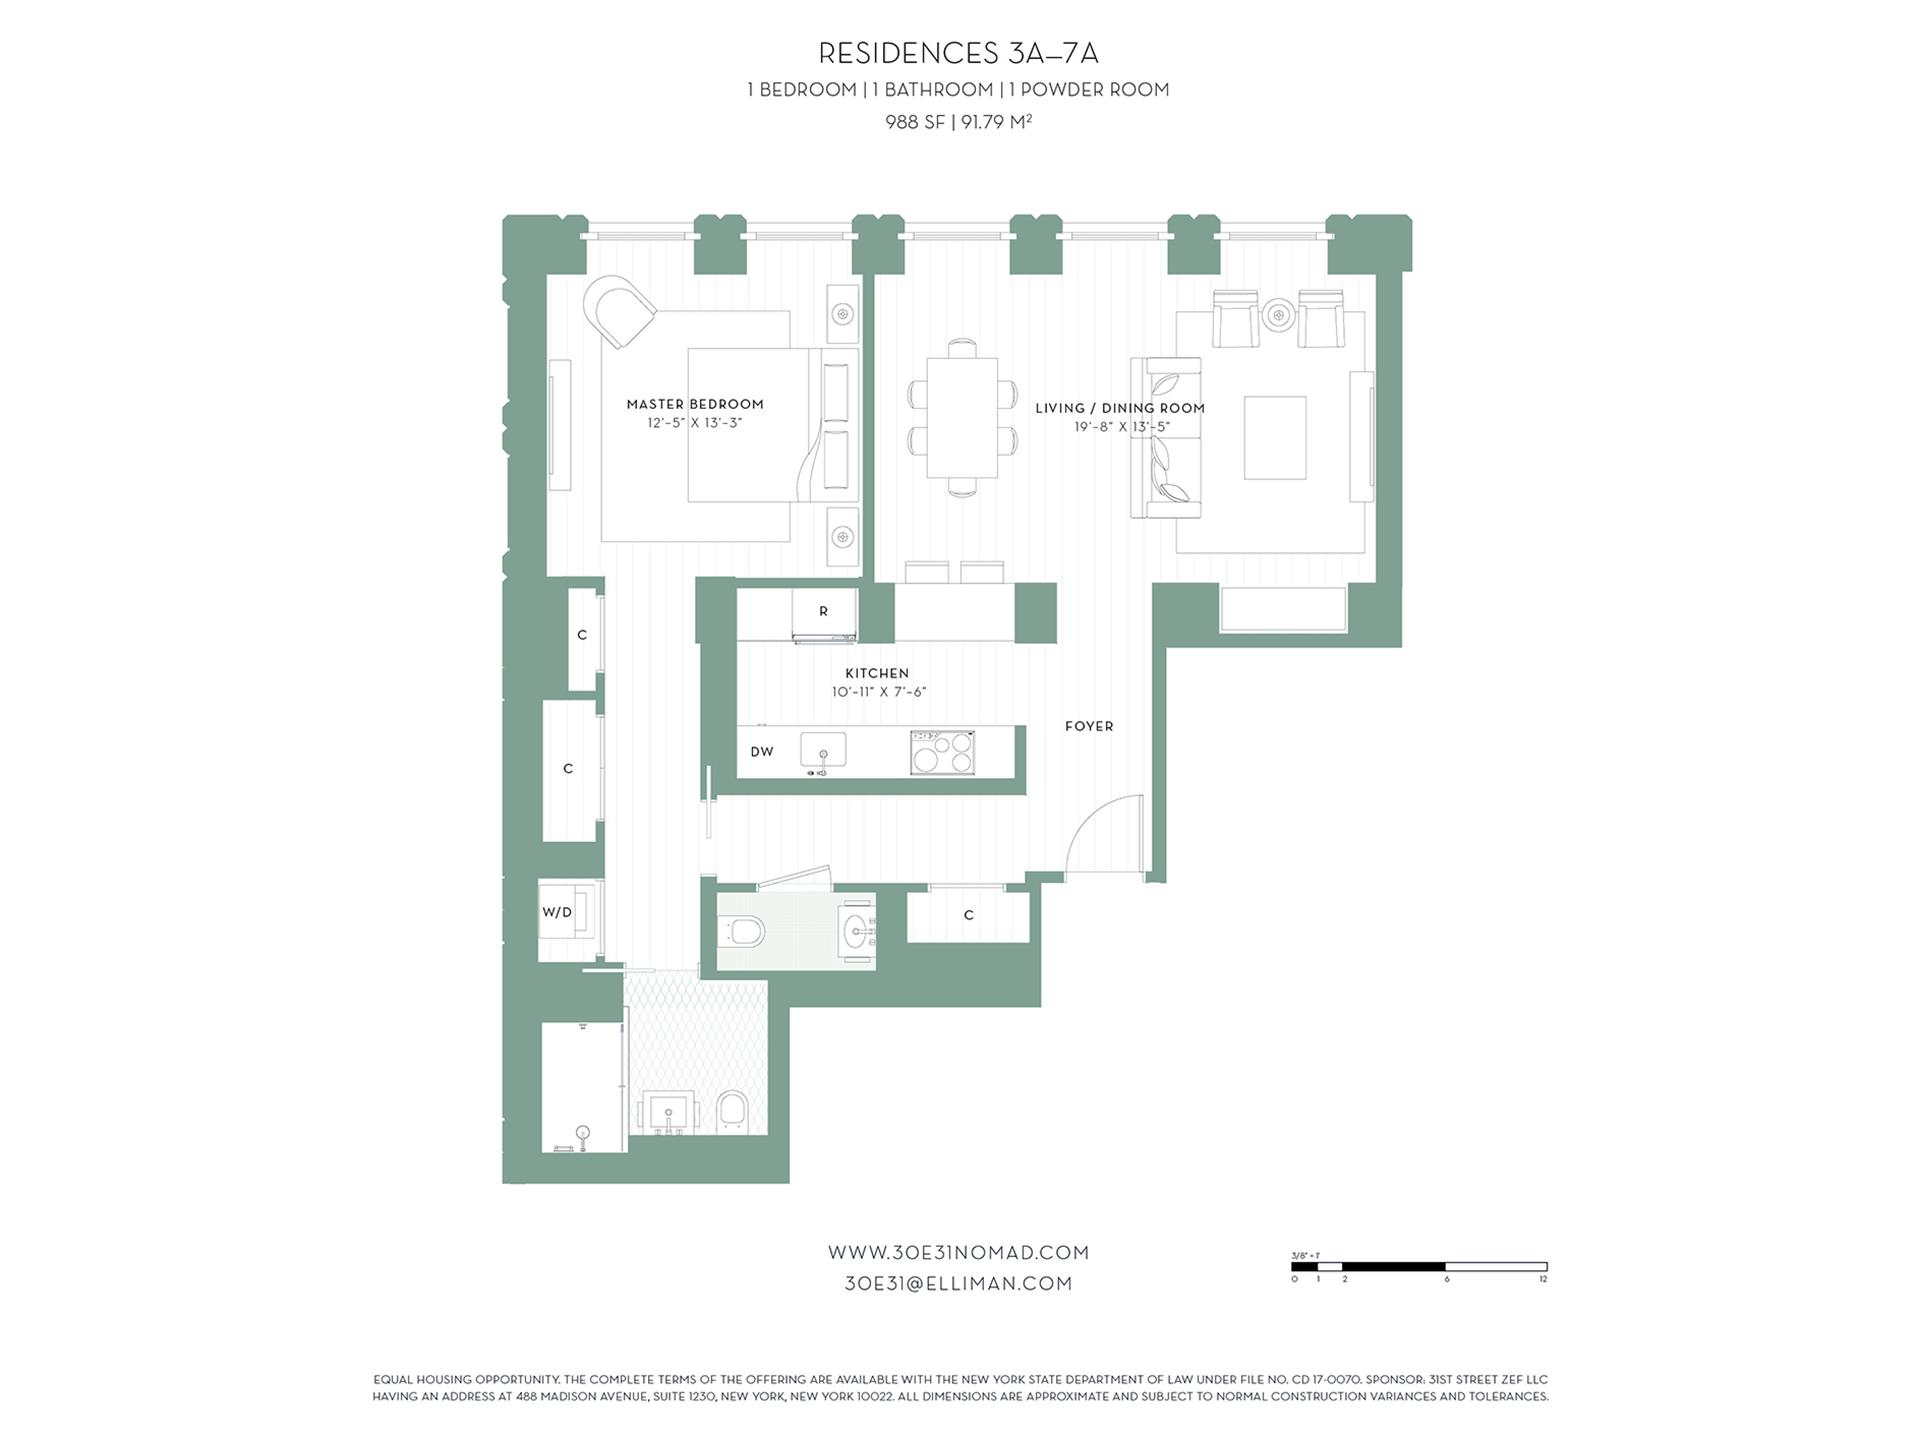 Floor plan of 30 East 31st St, 4A - Midtown, New York